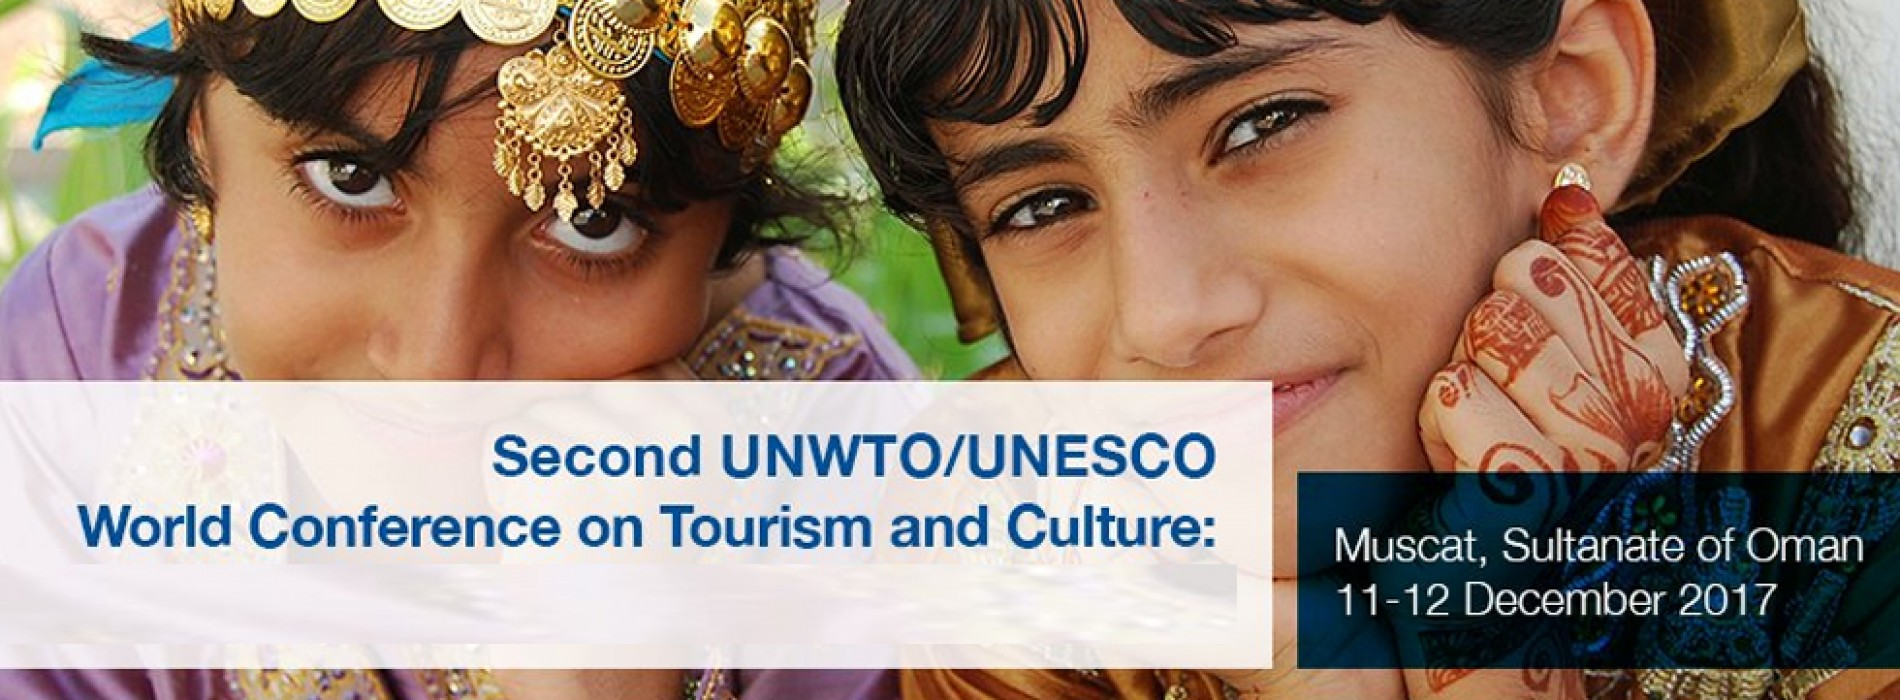 Dr. Mahesh Sharma led Indian delegation to Second UNWTO/UNESCO World Conference on Tourism and Culture at Muscot